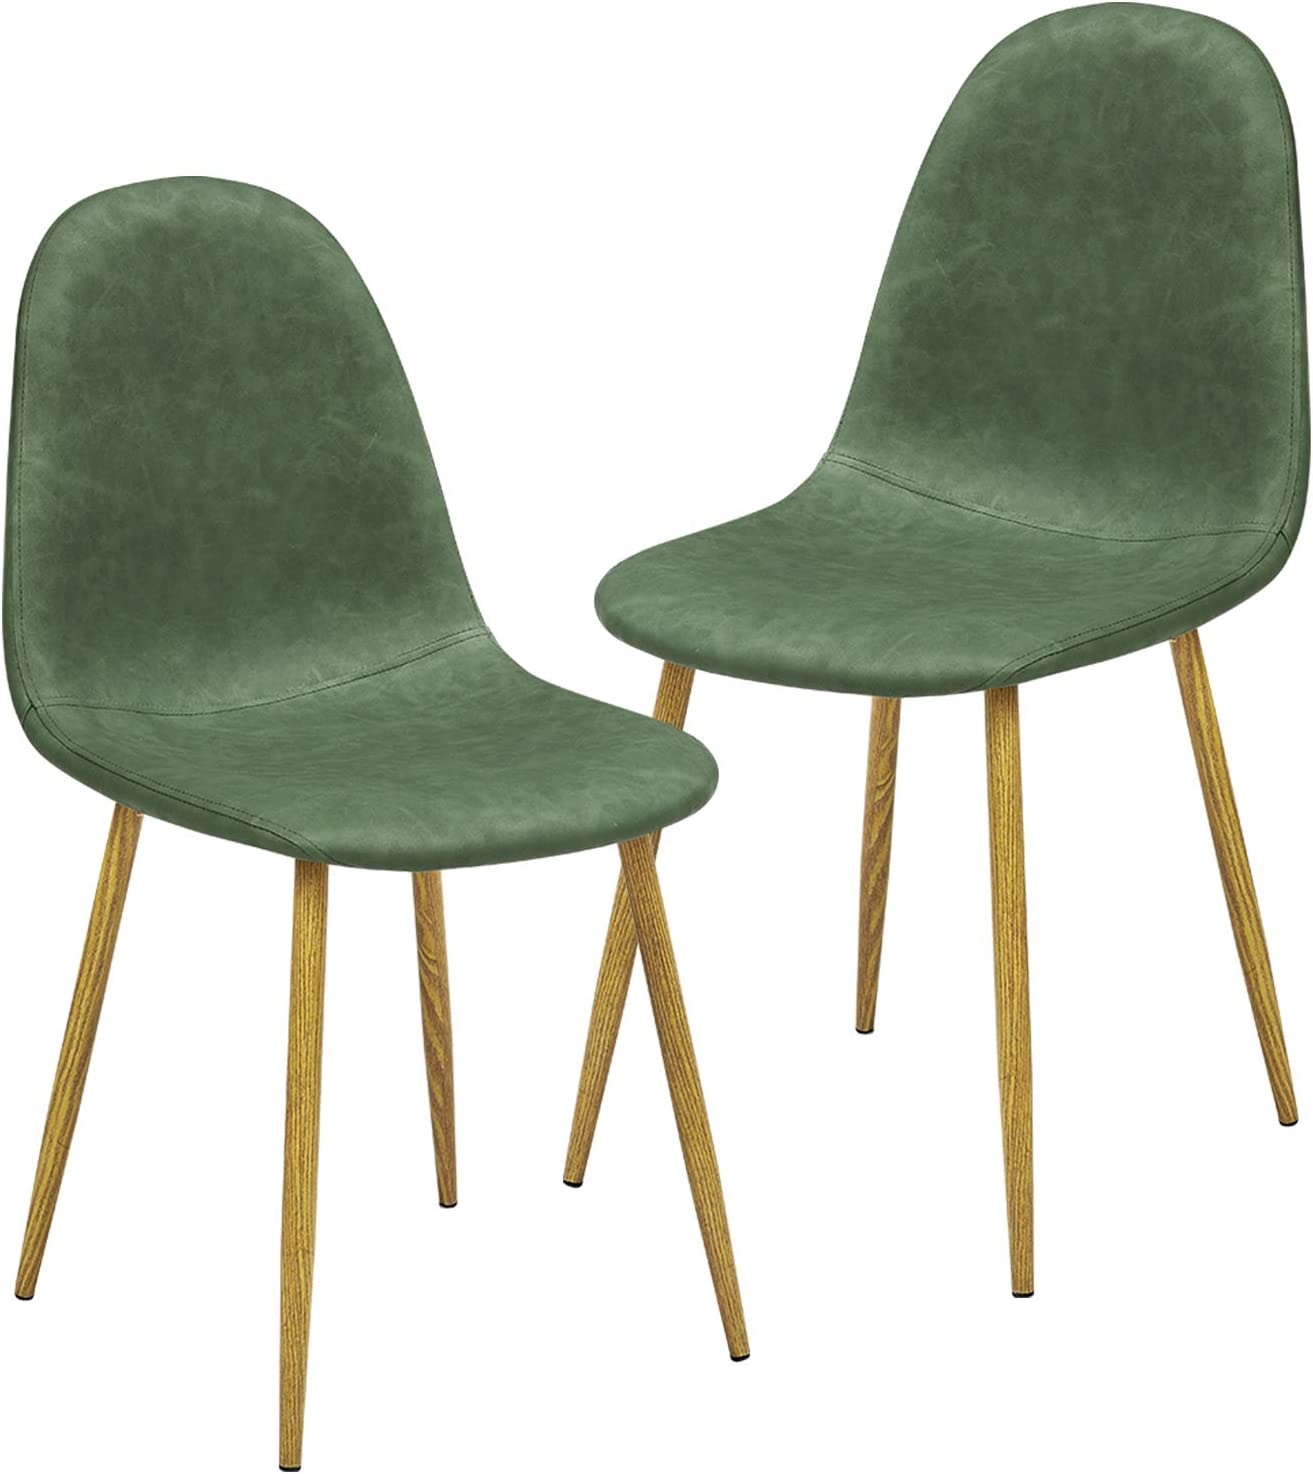 GreenForest Dining Chairs Set of 2, Wipeable PU Faux Leather Mid Century Modern Kitchen Room Side Chairs for Living Room Bedroom, Chairs for Thanksgiving and Christmas,Forest Green/Cactus